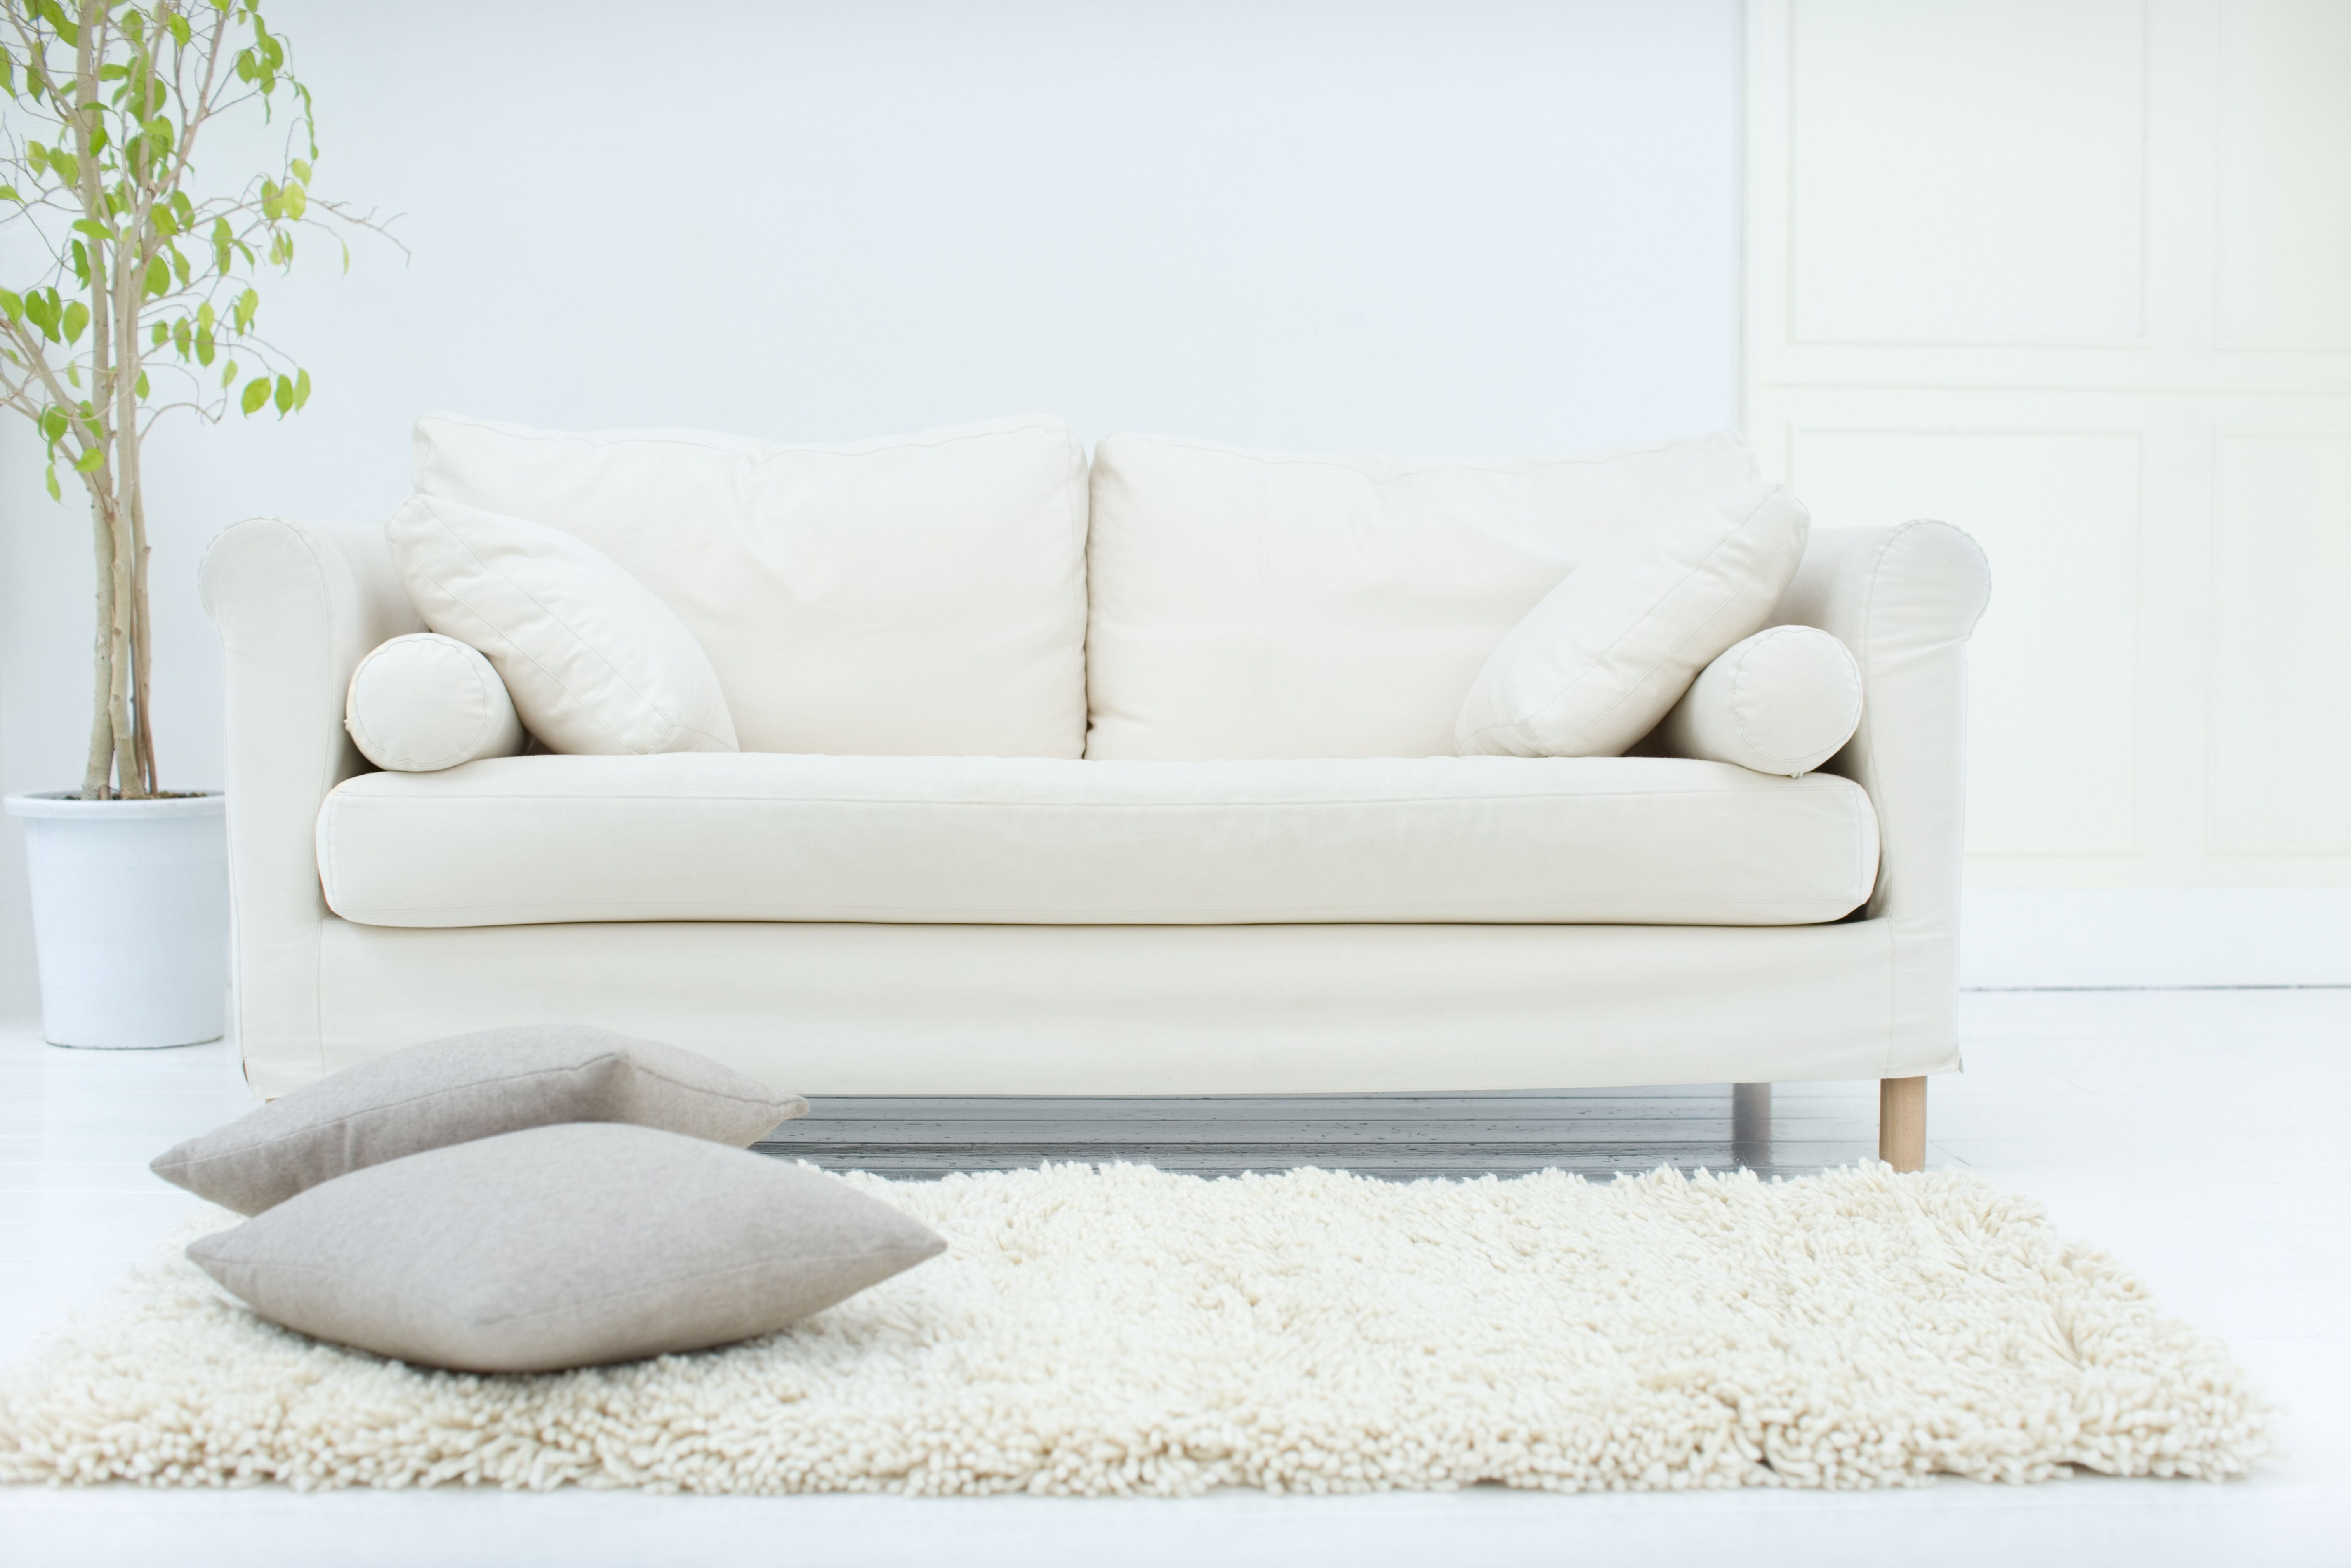 Things to Consider Before You Buy a Sofa